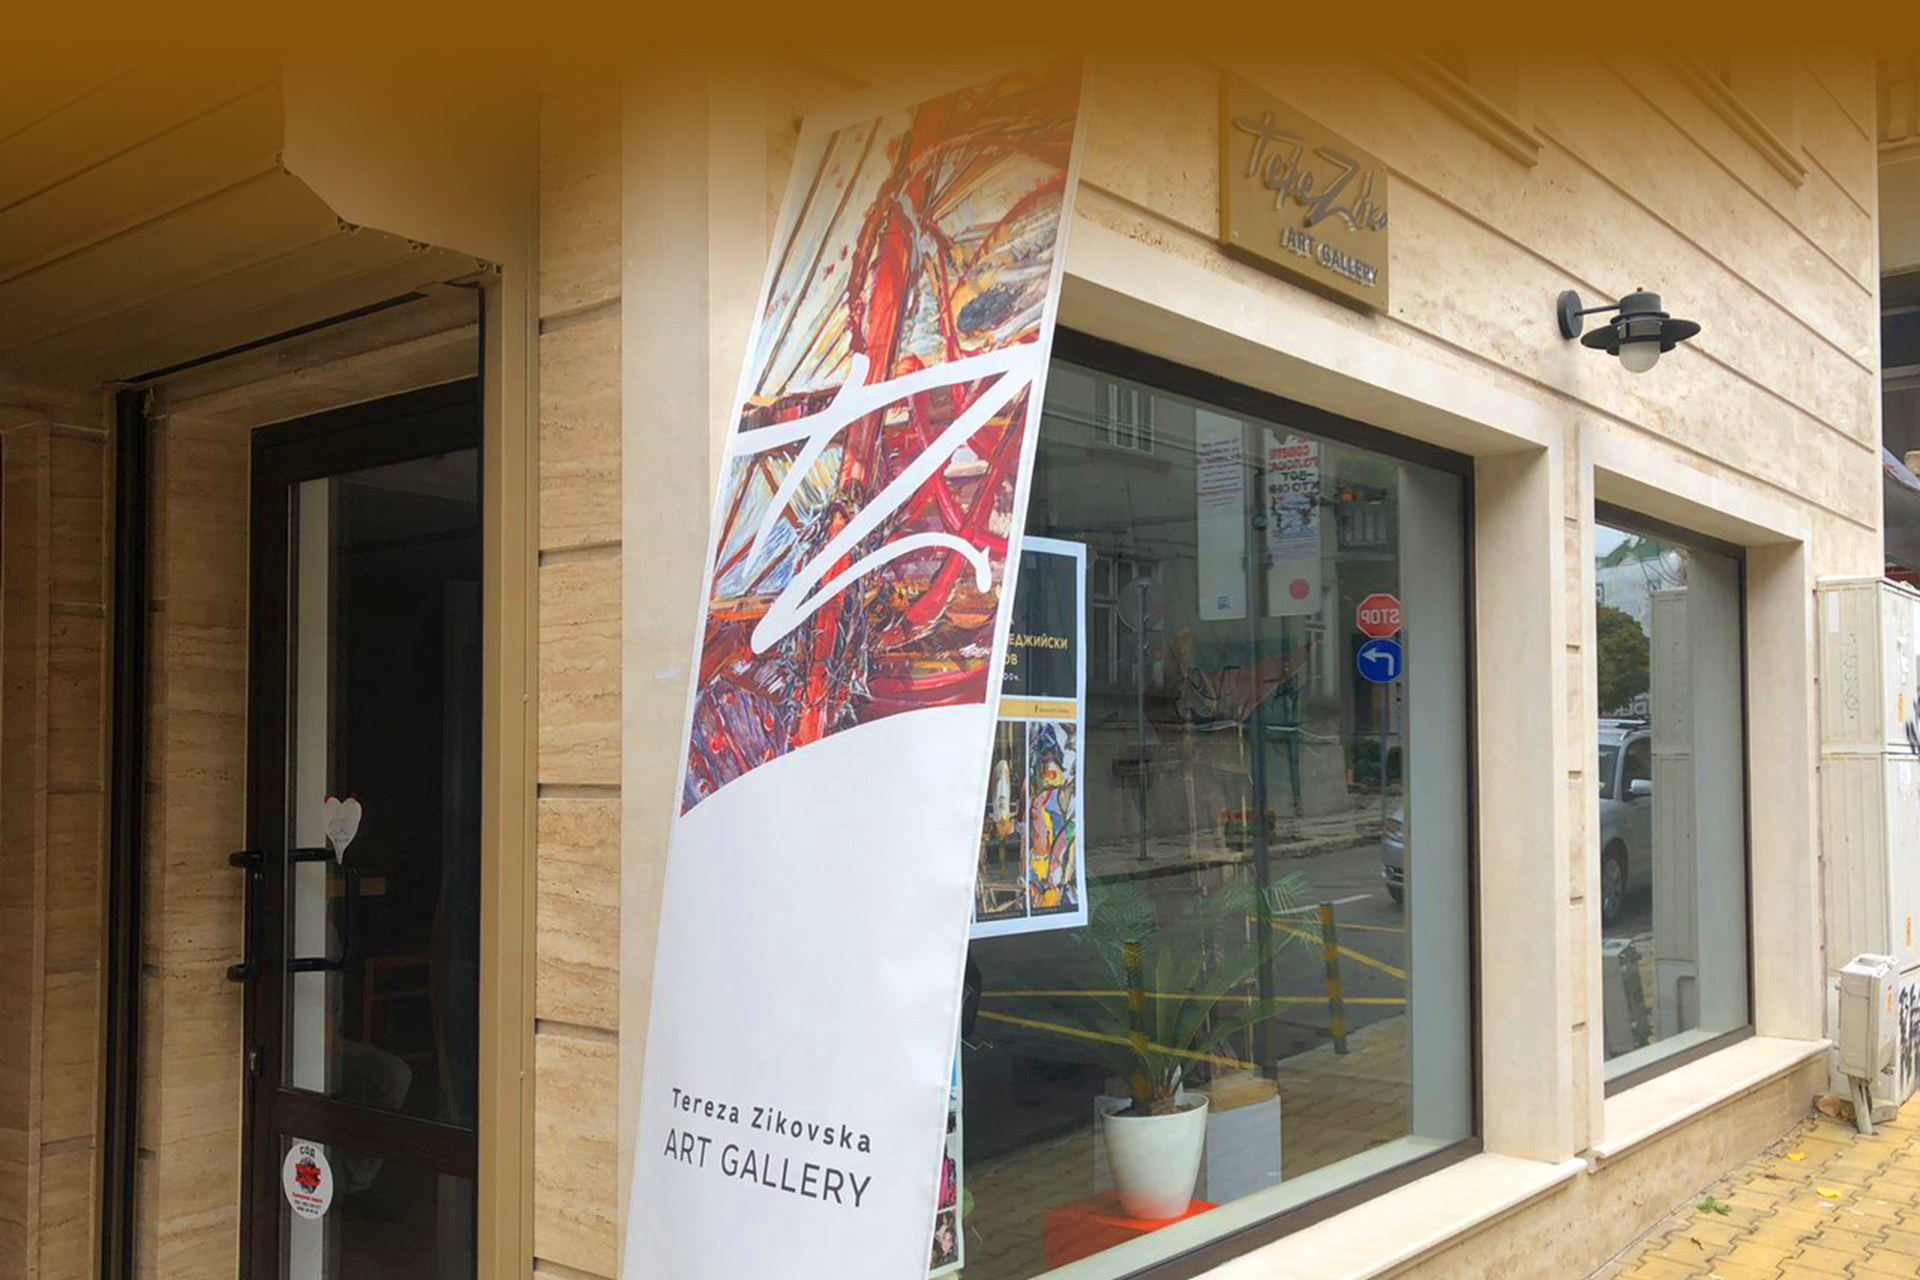 A look at Tereza Zikovska Art Gallery from the outside on Voden street in Varna